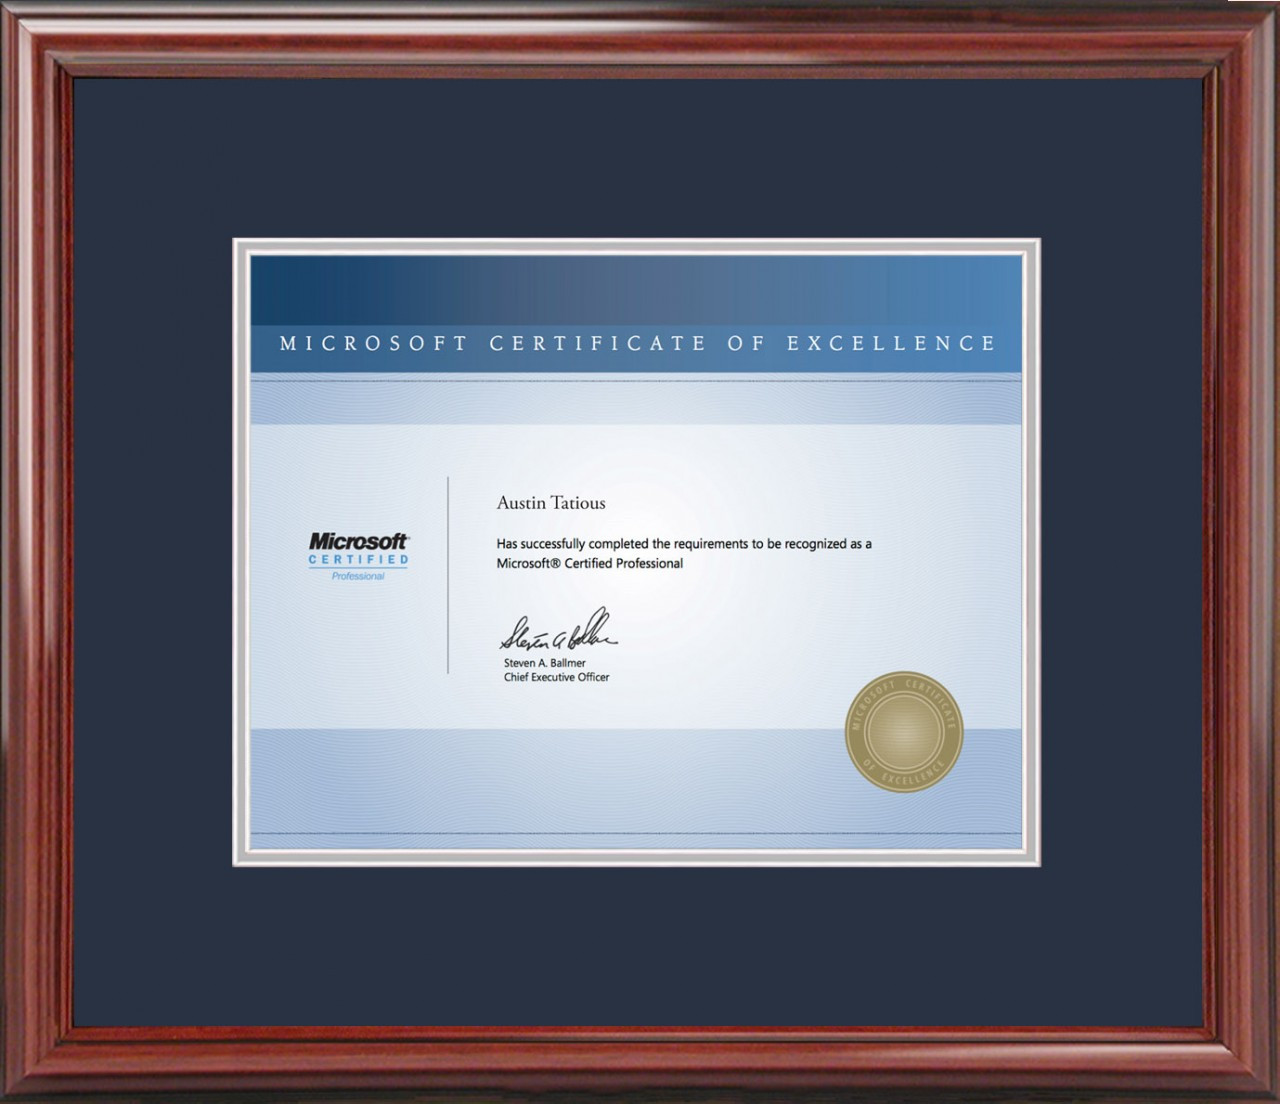 Microsoft 174 Certificate Frame Cherry With Navy Mat